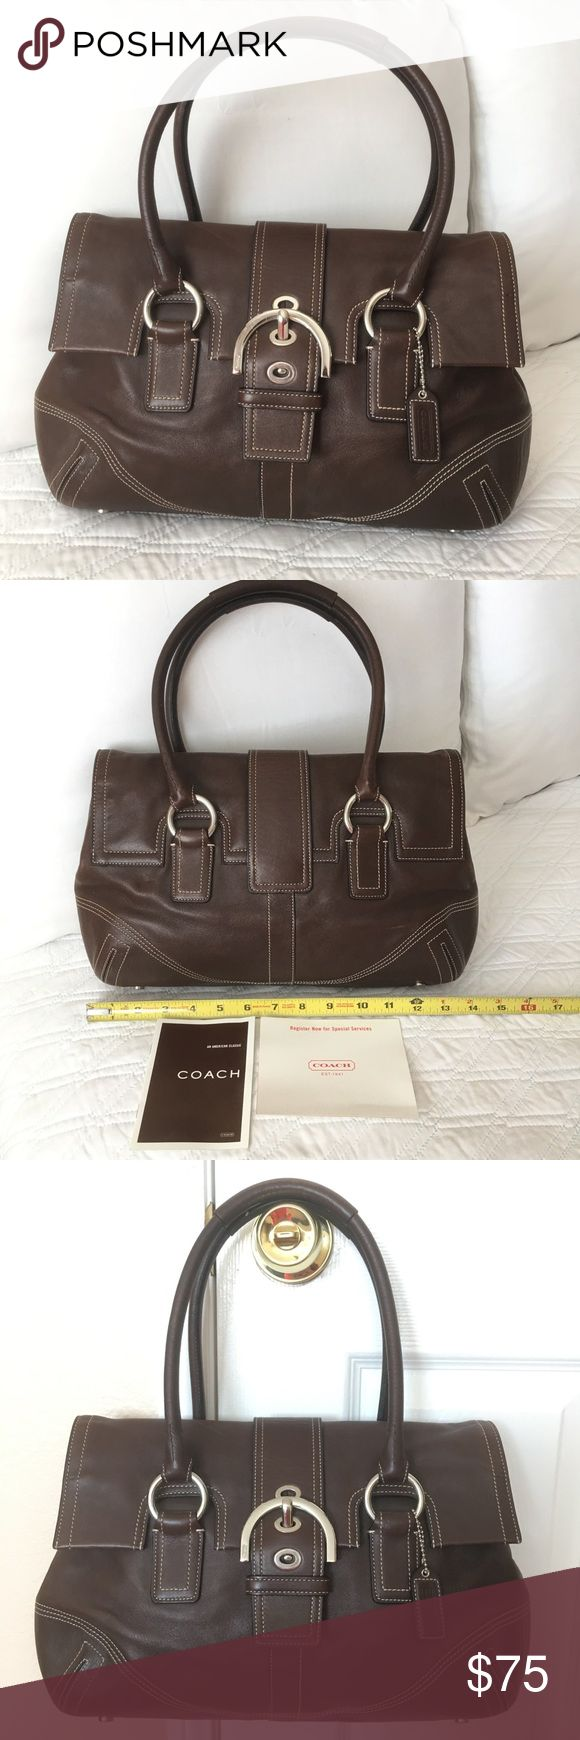 """Authentic Coach Leather Handbag AUTHENTIC! Beautiful and well made leather bag from Coach 💕 Approximate measurements: NOT EXACT 14"""" x  8 1/2""""  Strap drop is about 9"""" It has interior pockets. In good, used condition. NO TRADE❌ Coach Bags"""